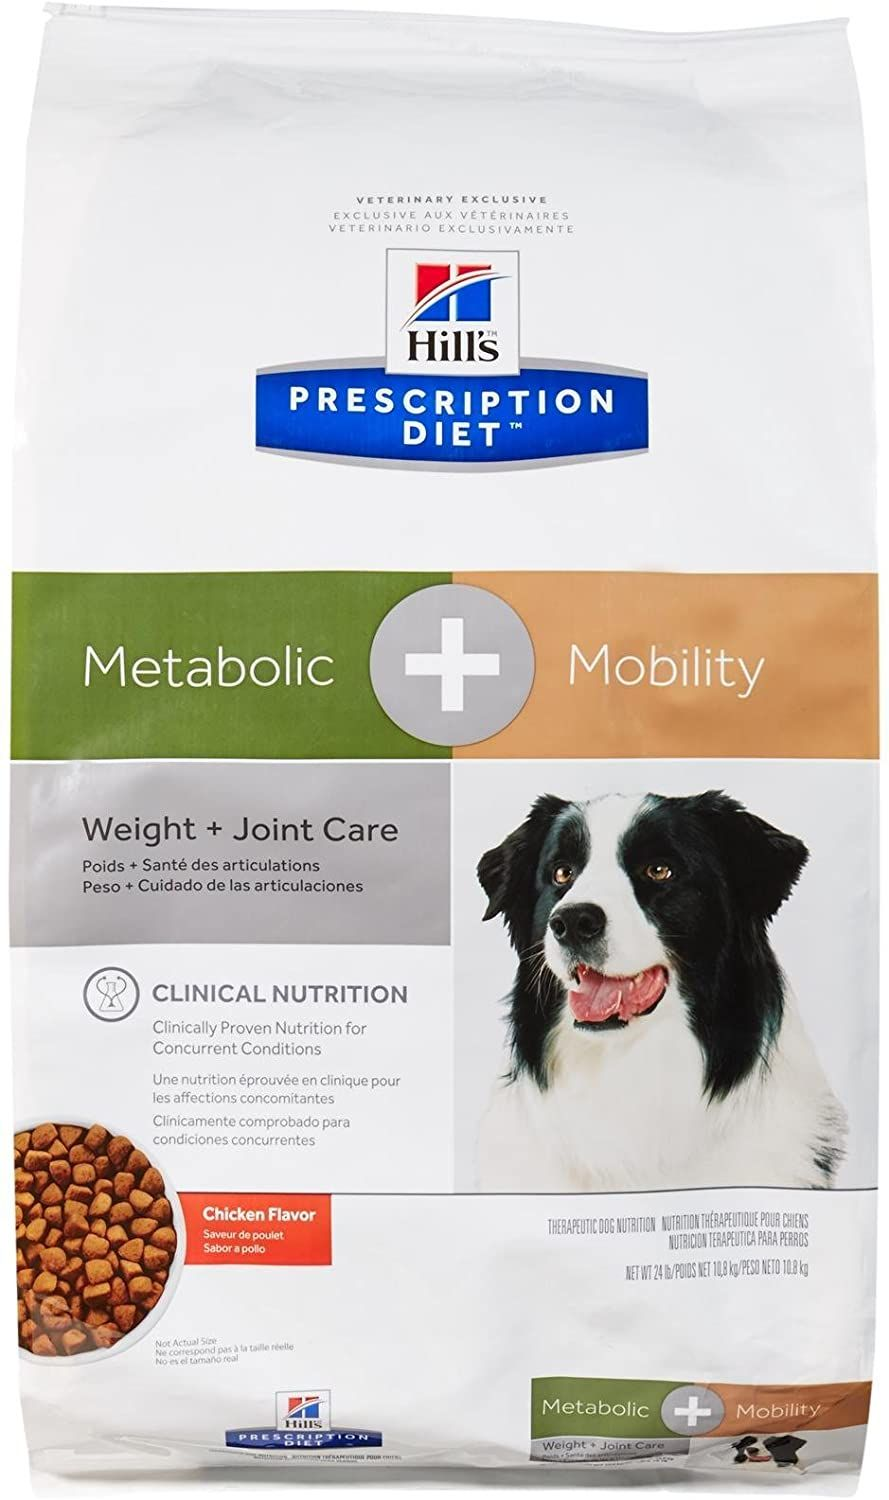 Hills Prescription Diet Metabolicmobility Caninechicken Flavorlbs Pet Supplies Amazon Affiliate Link Click Image F Dry Dog Food Chicken Flavors Diet Dog Food